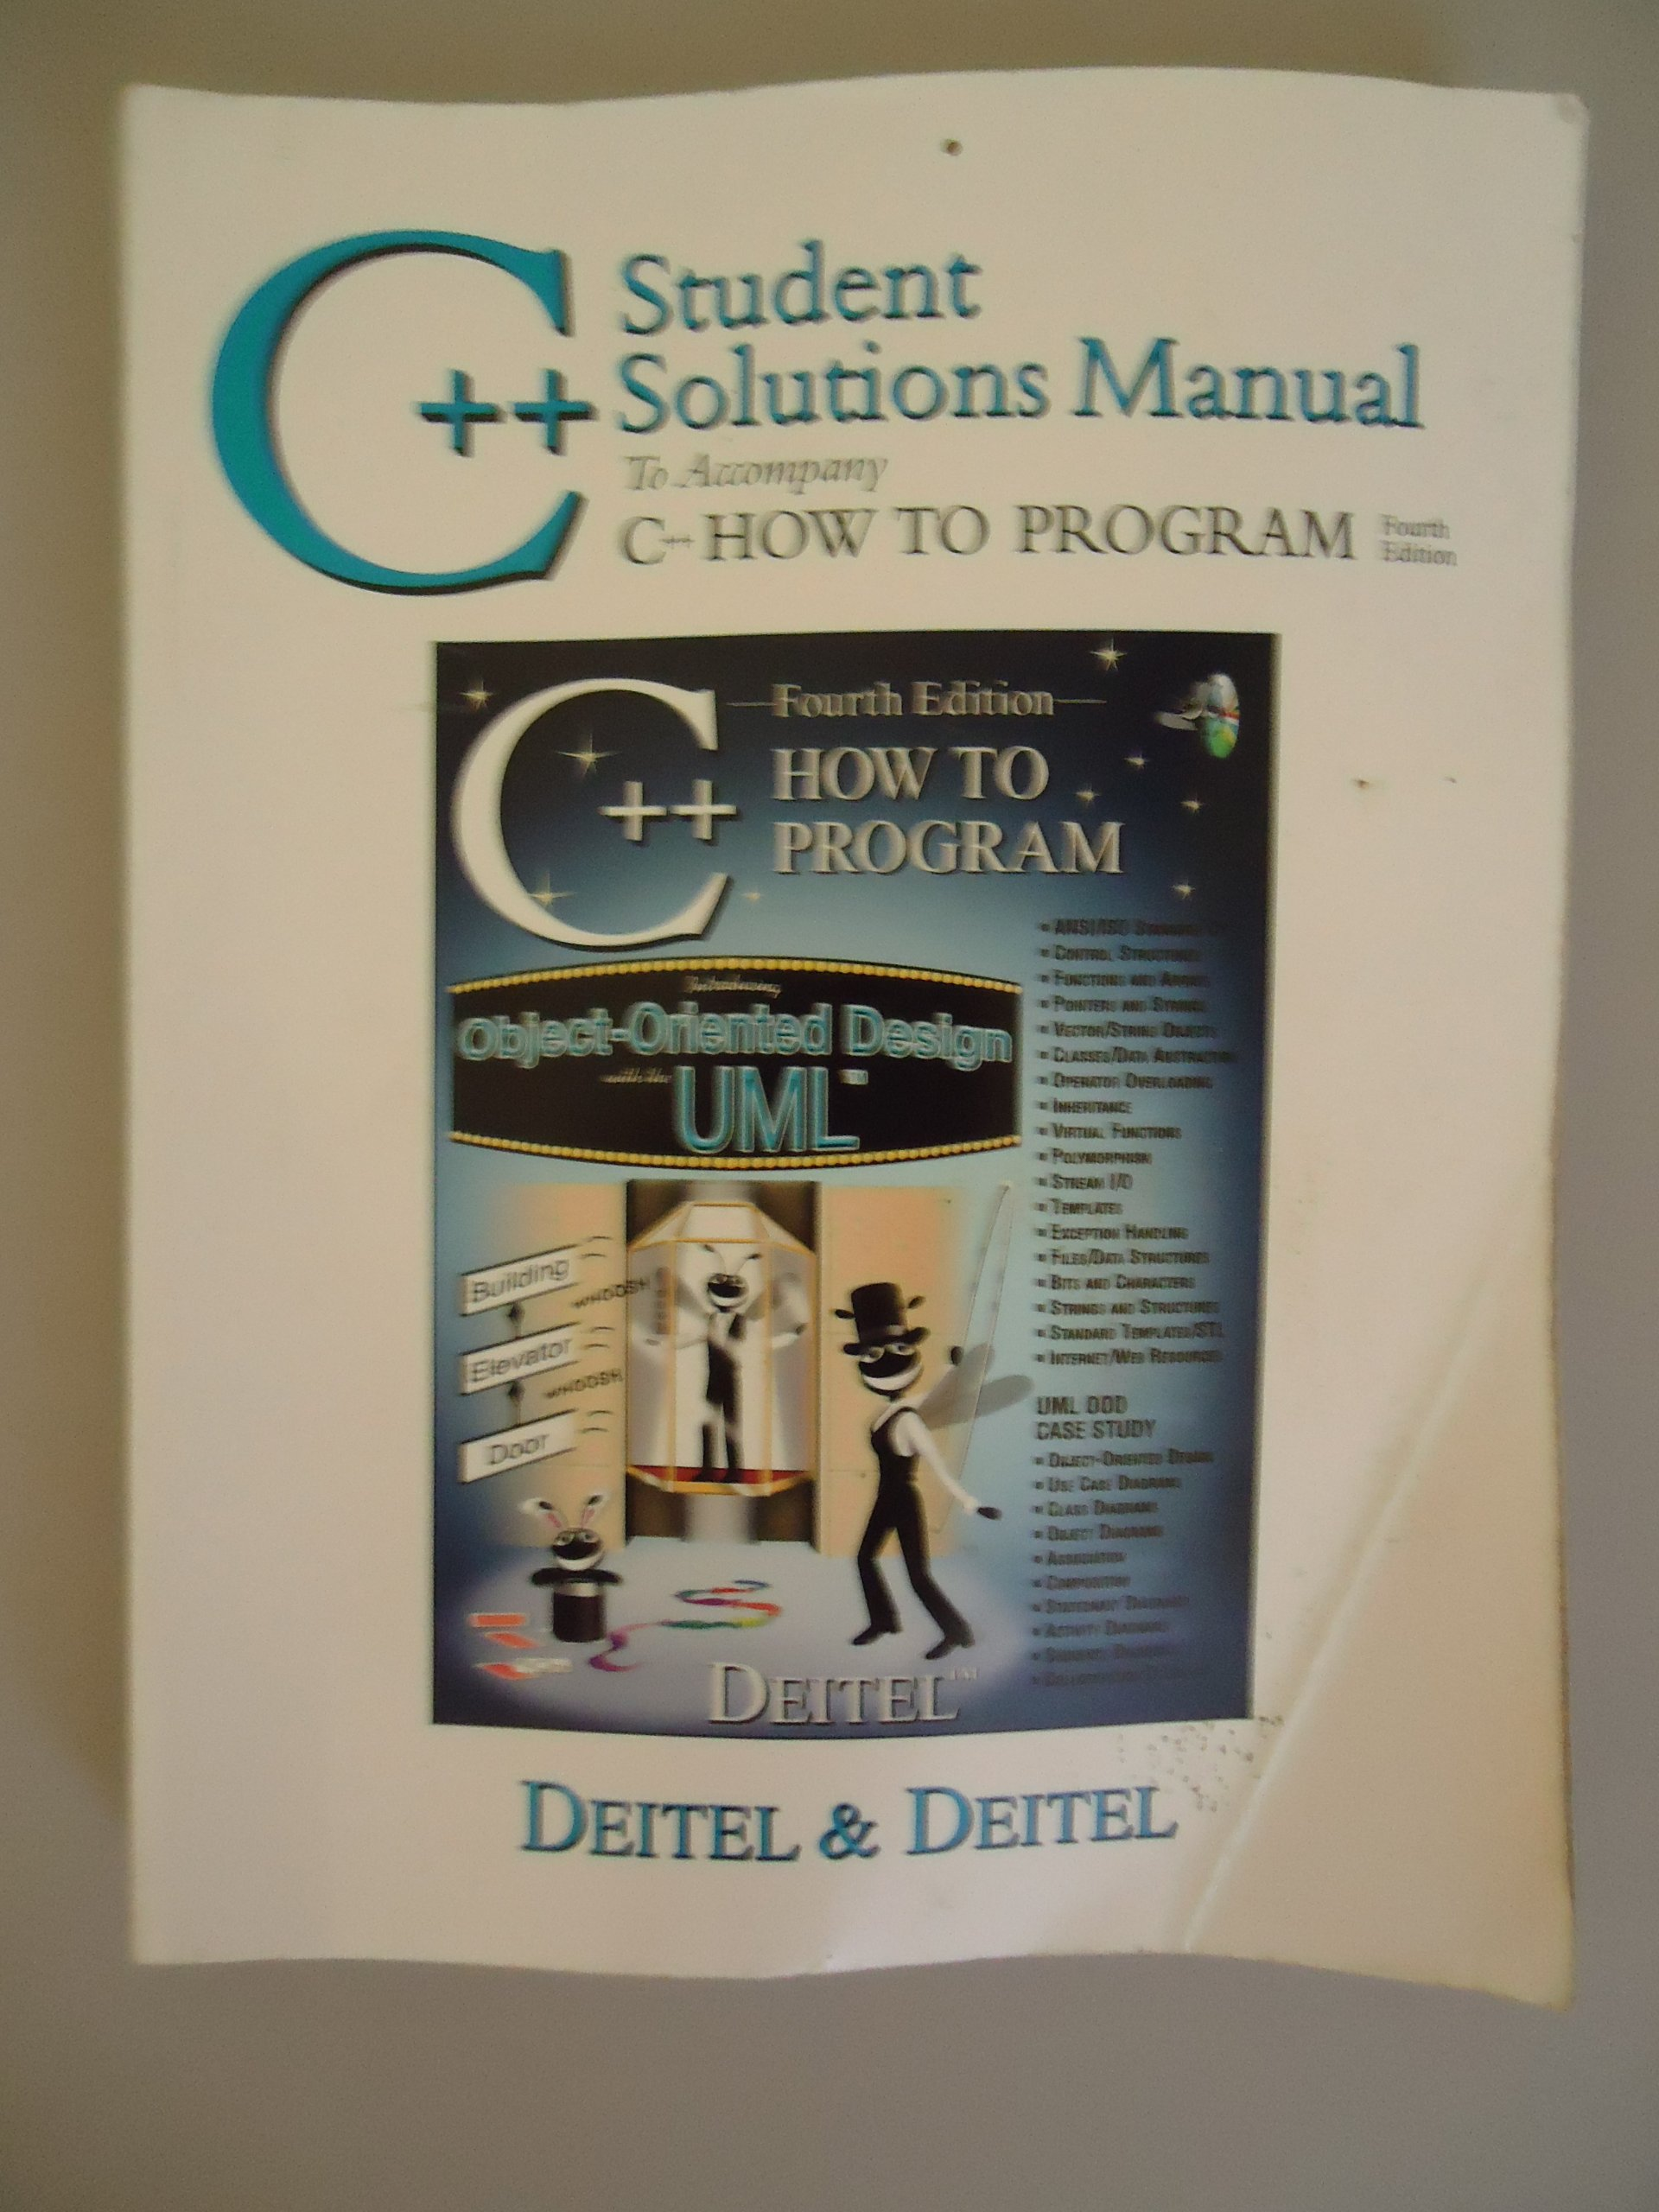 C++ Student Solutions Manual: Paul J. Deitel: 9780131425781: Books -  Amazon.ca